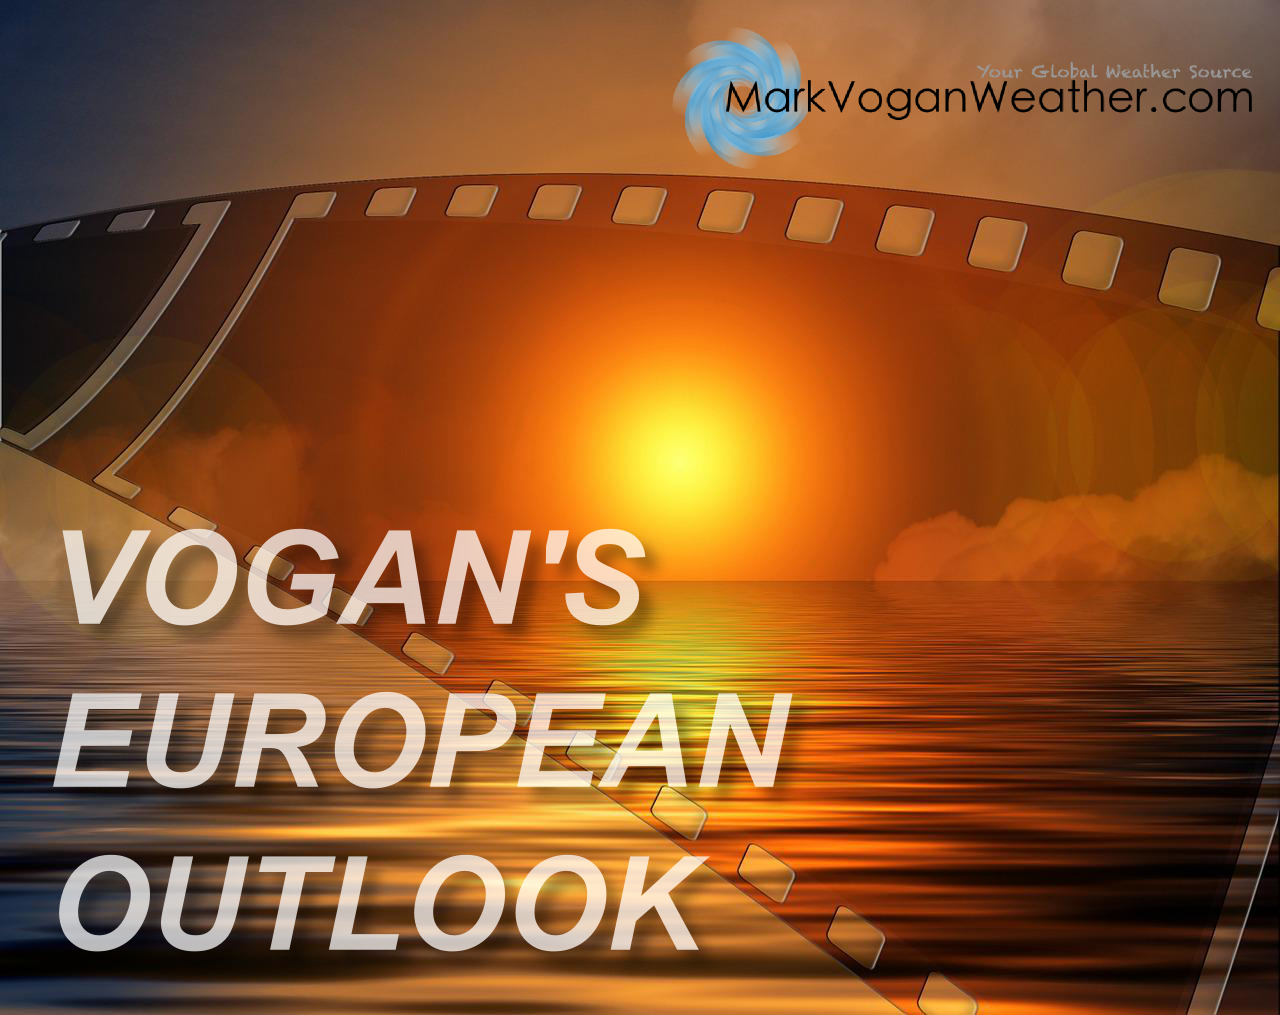 WED 19 MAR: VOGAN'S EUROPEAN OUTLOOK